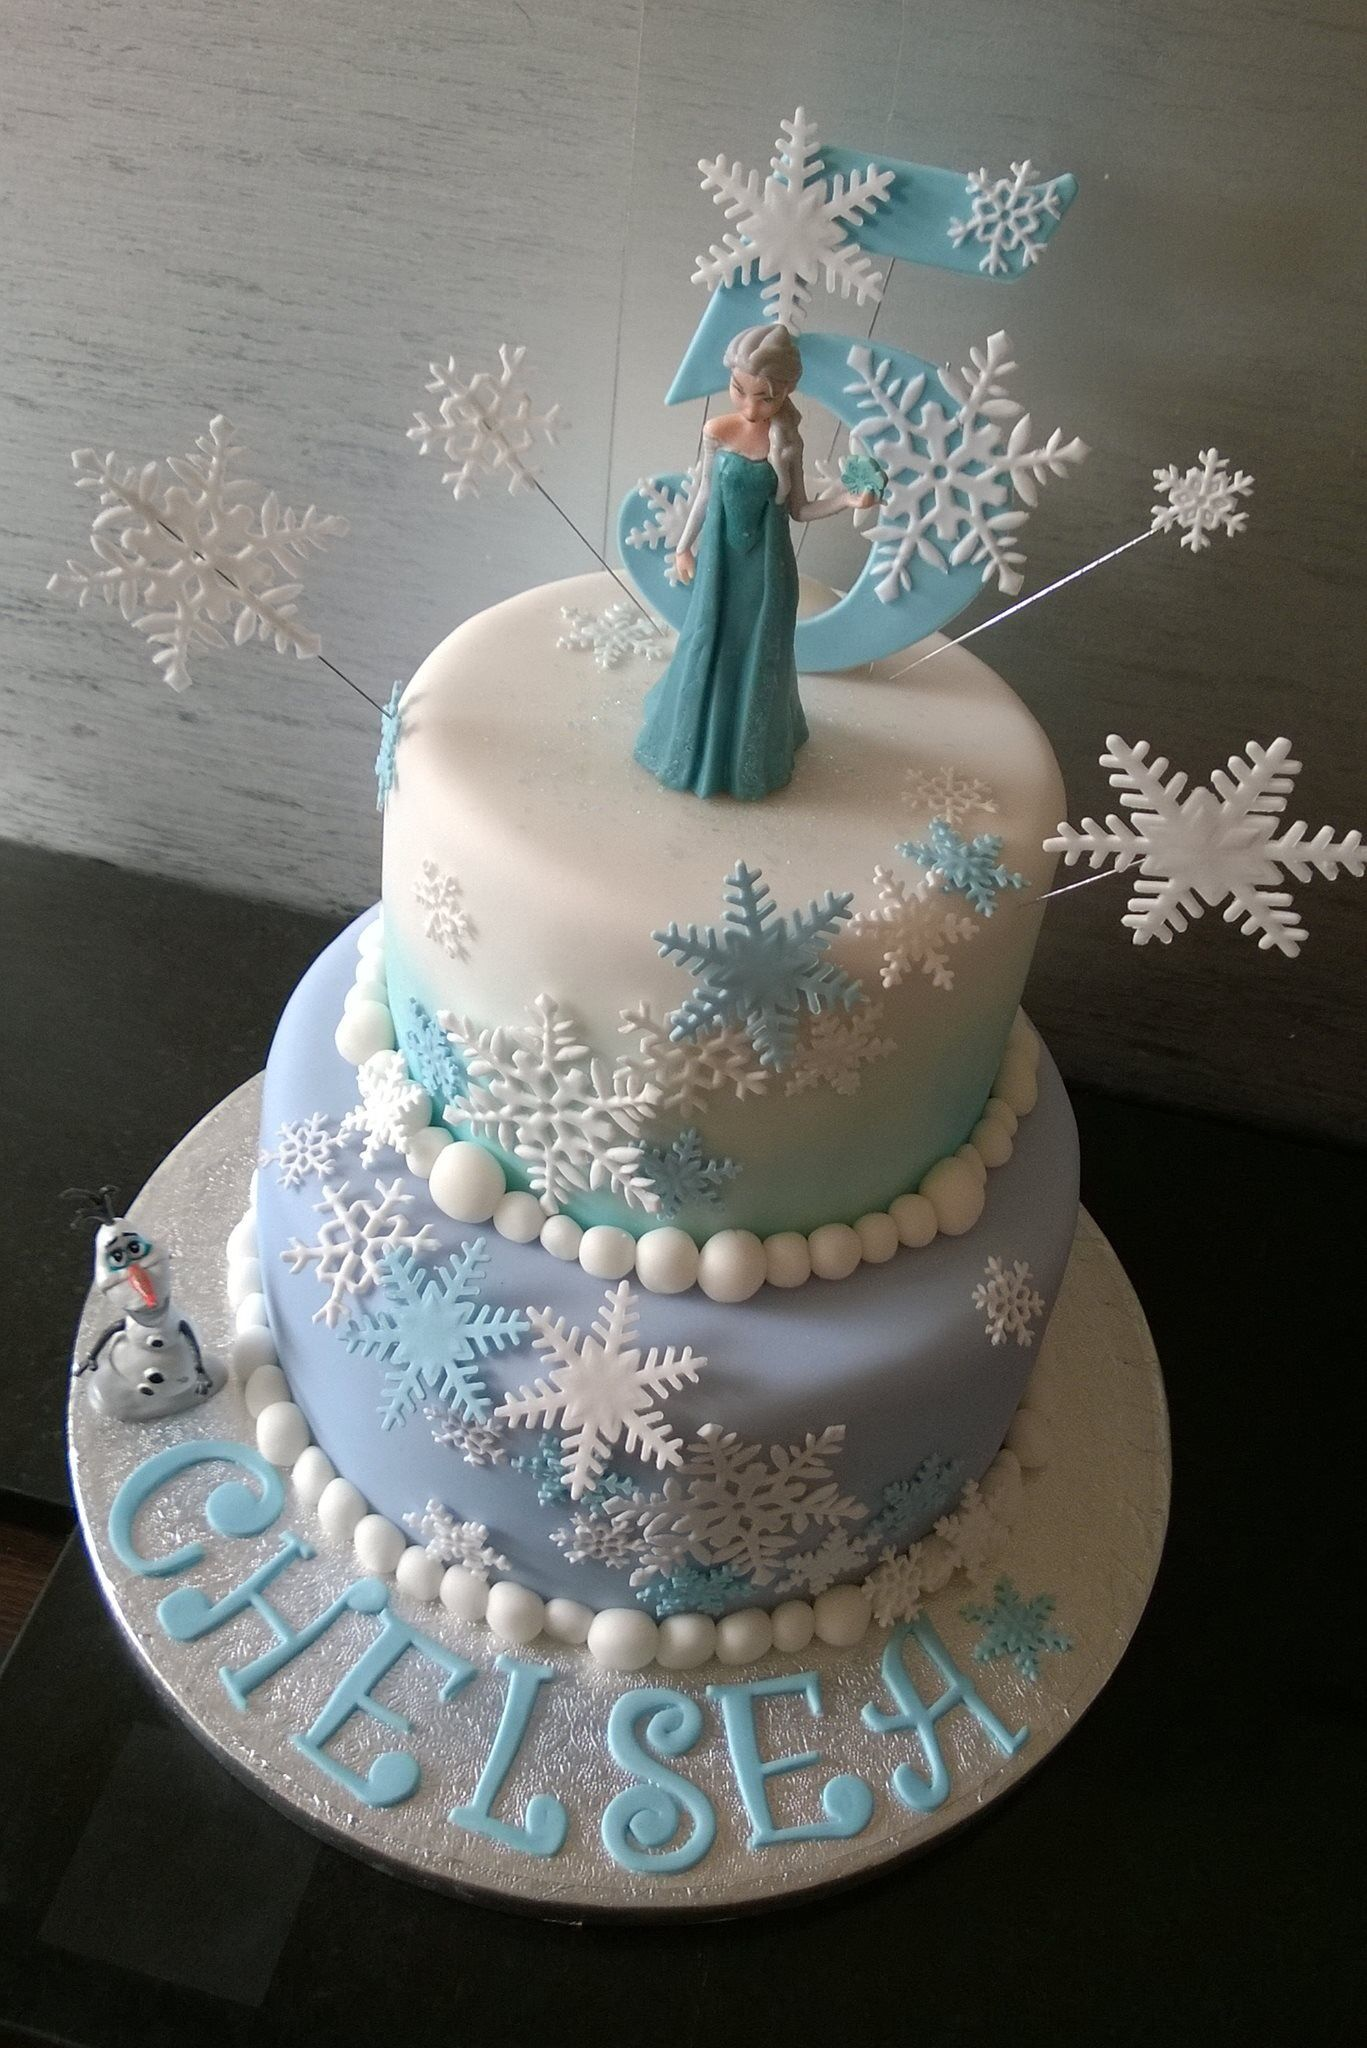 2 Tier Frozen Cake With Images Frozen Theme Cake Frozen